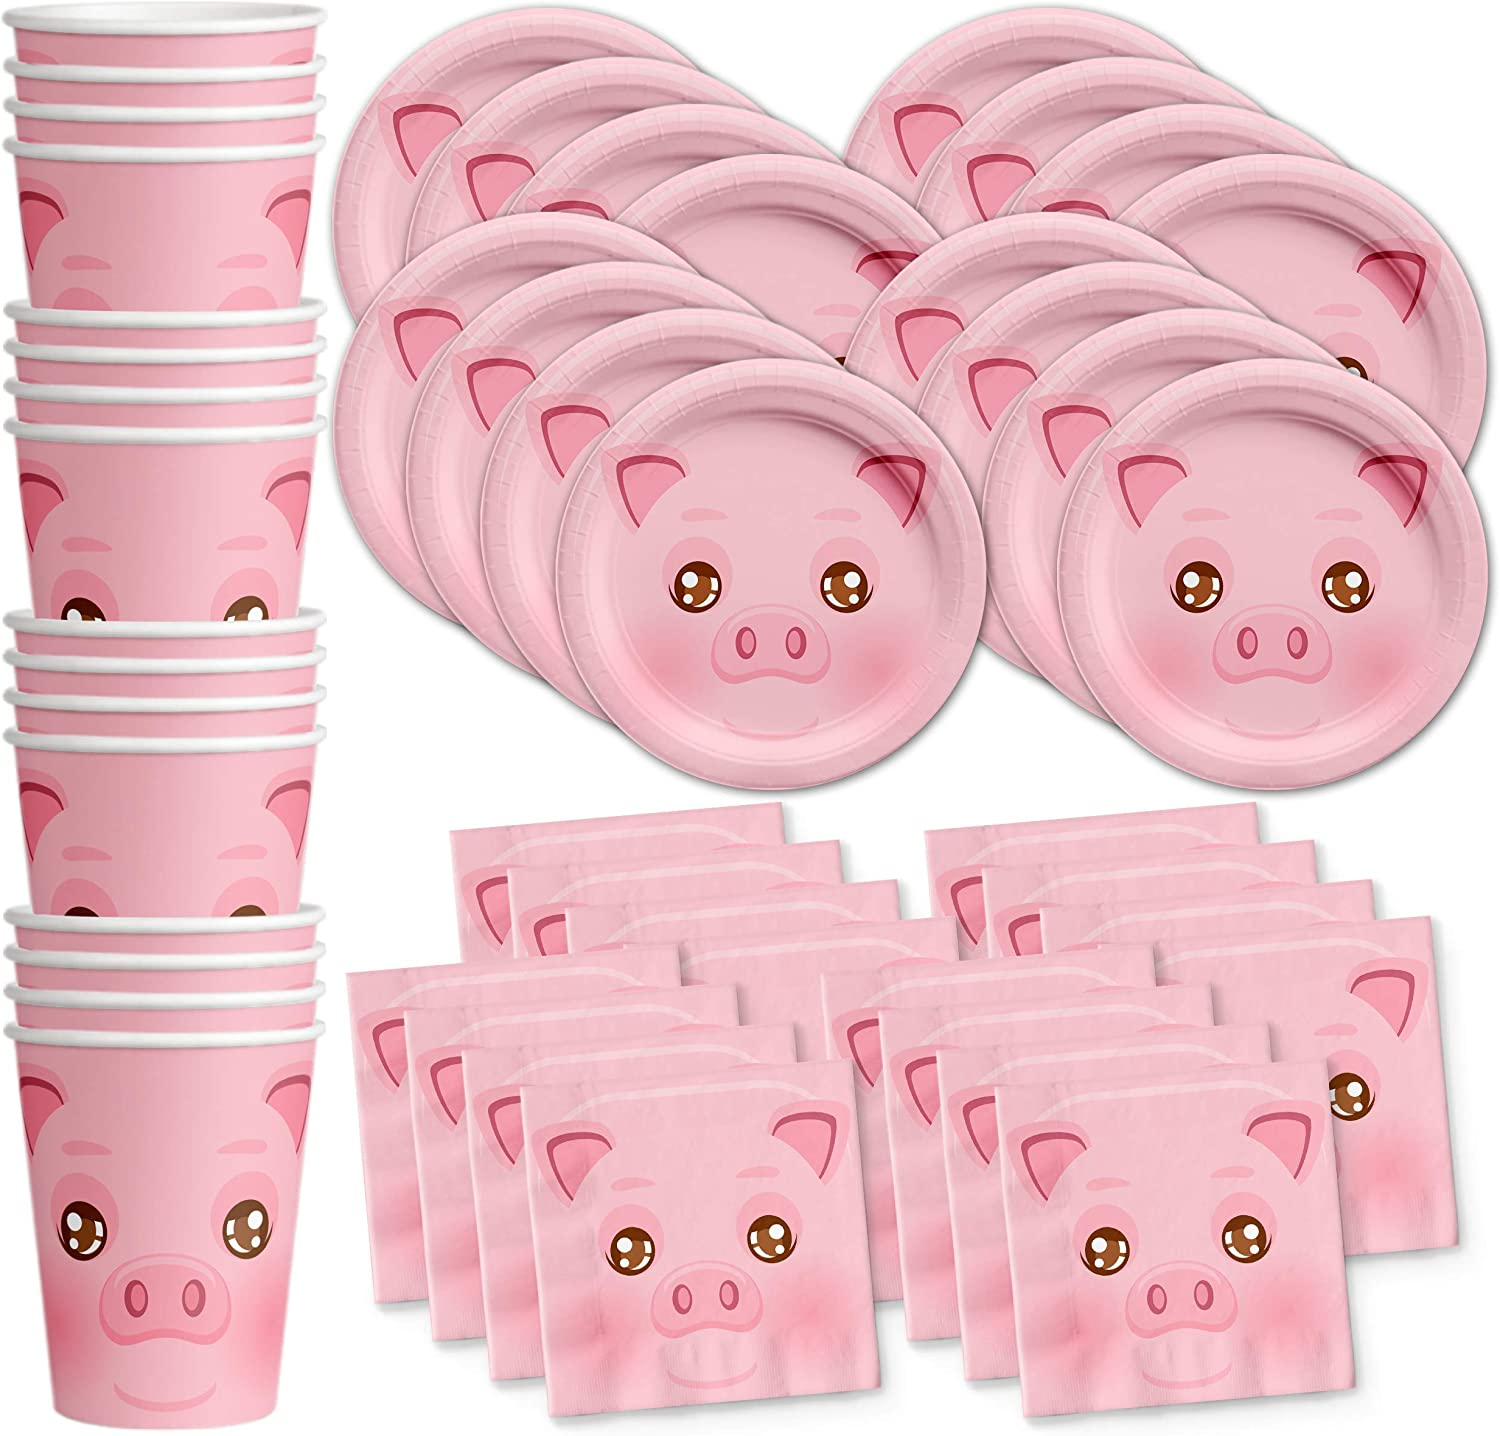 Pig Birthday Party Supplies Set Plates Napkins Cups Tableware Kit for 16